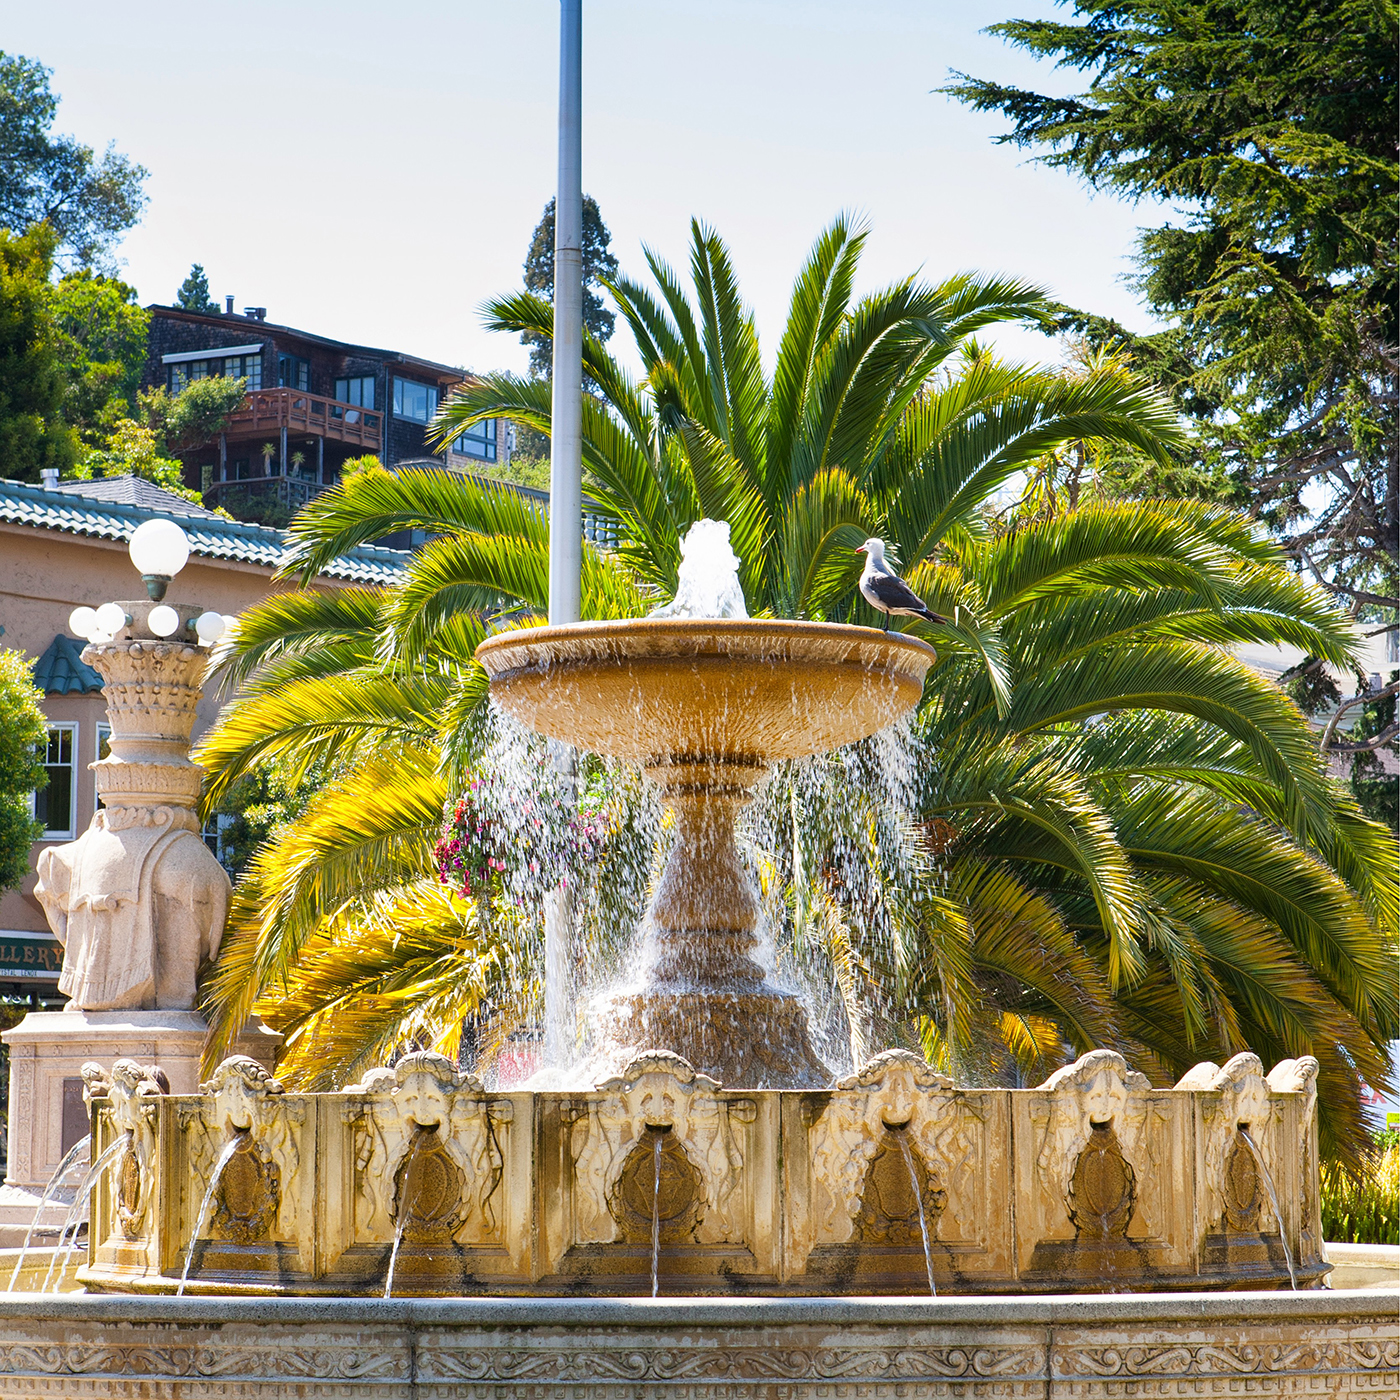 Sausalito Real Estate, Homes & Houses for Sale, Marin CA | PARAGON Real Estate Group